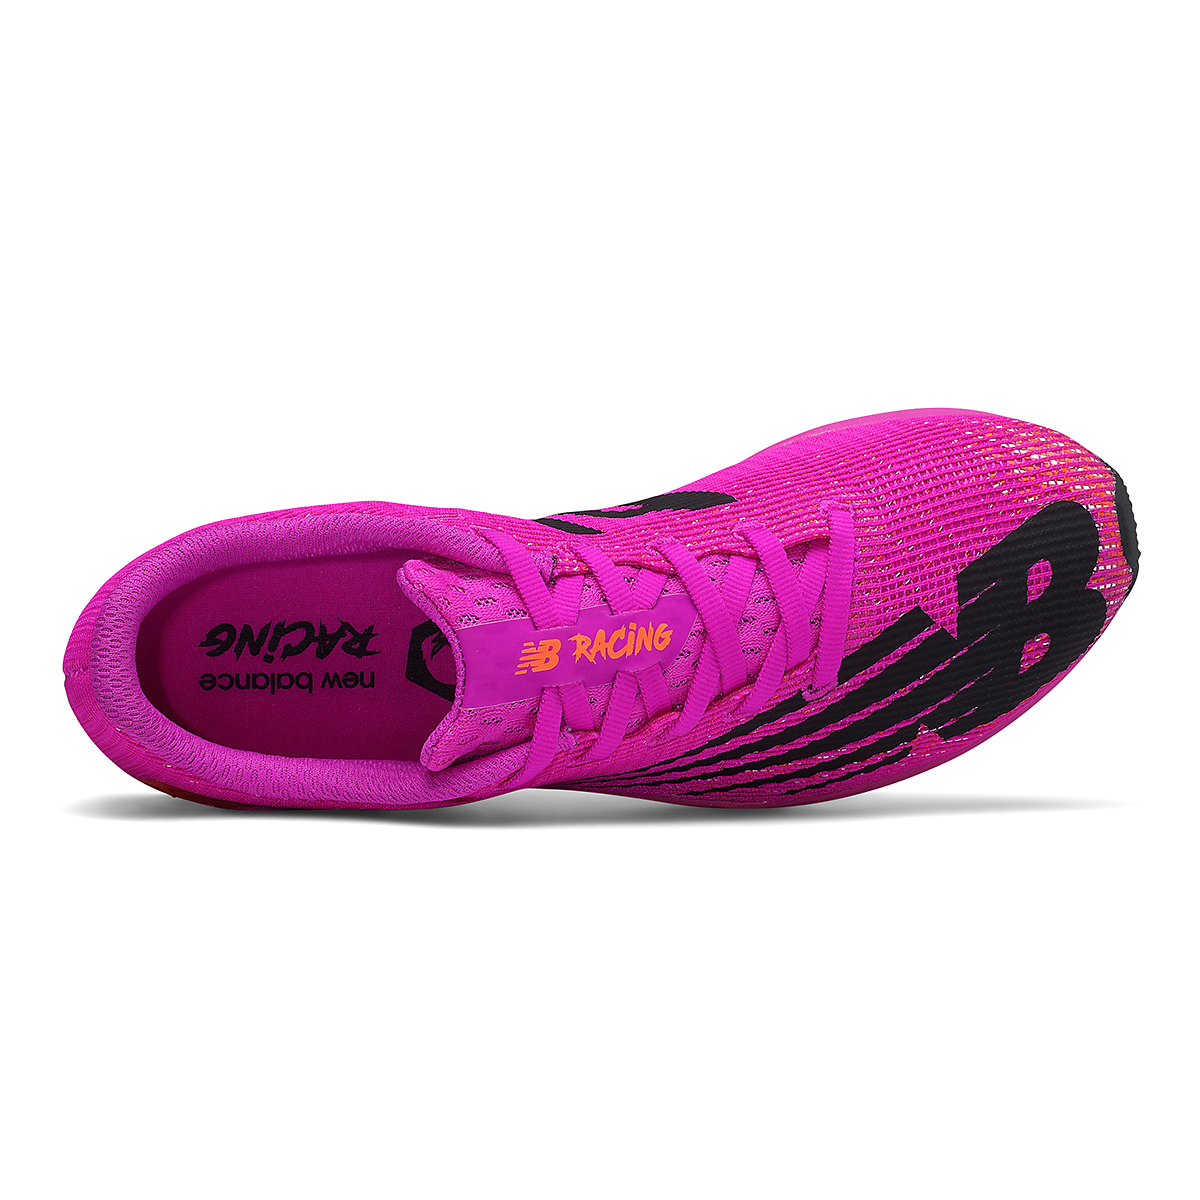 Women's New Balance XC Seven v3 Track Spikes - Color: Poison Berry/Dynomite - Size: 5.5 - Width: Regular, Poison Berry/Dynomite, large, image 3